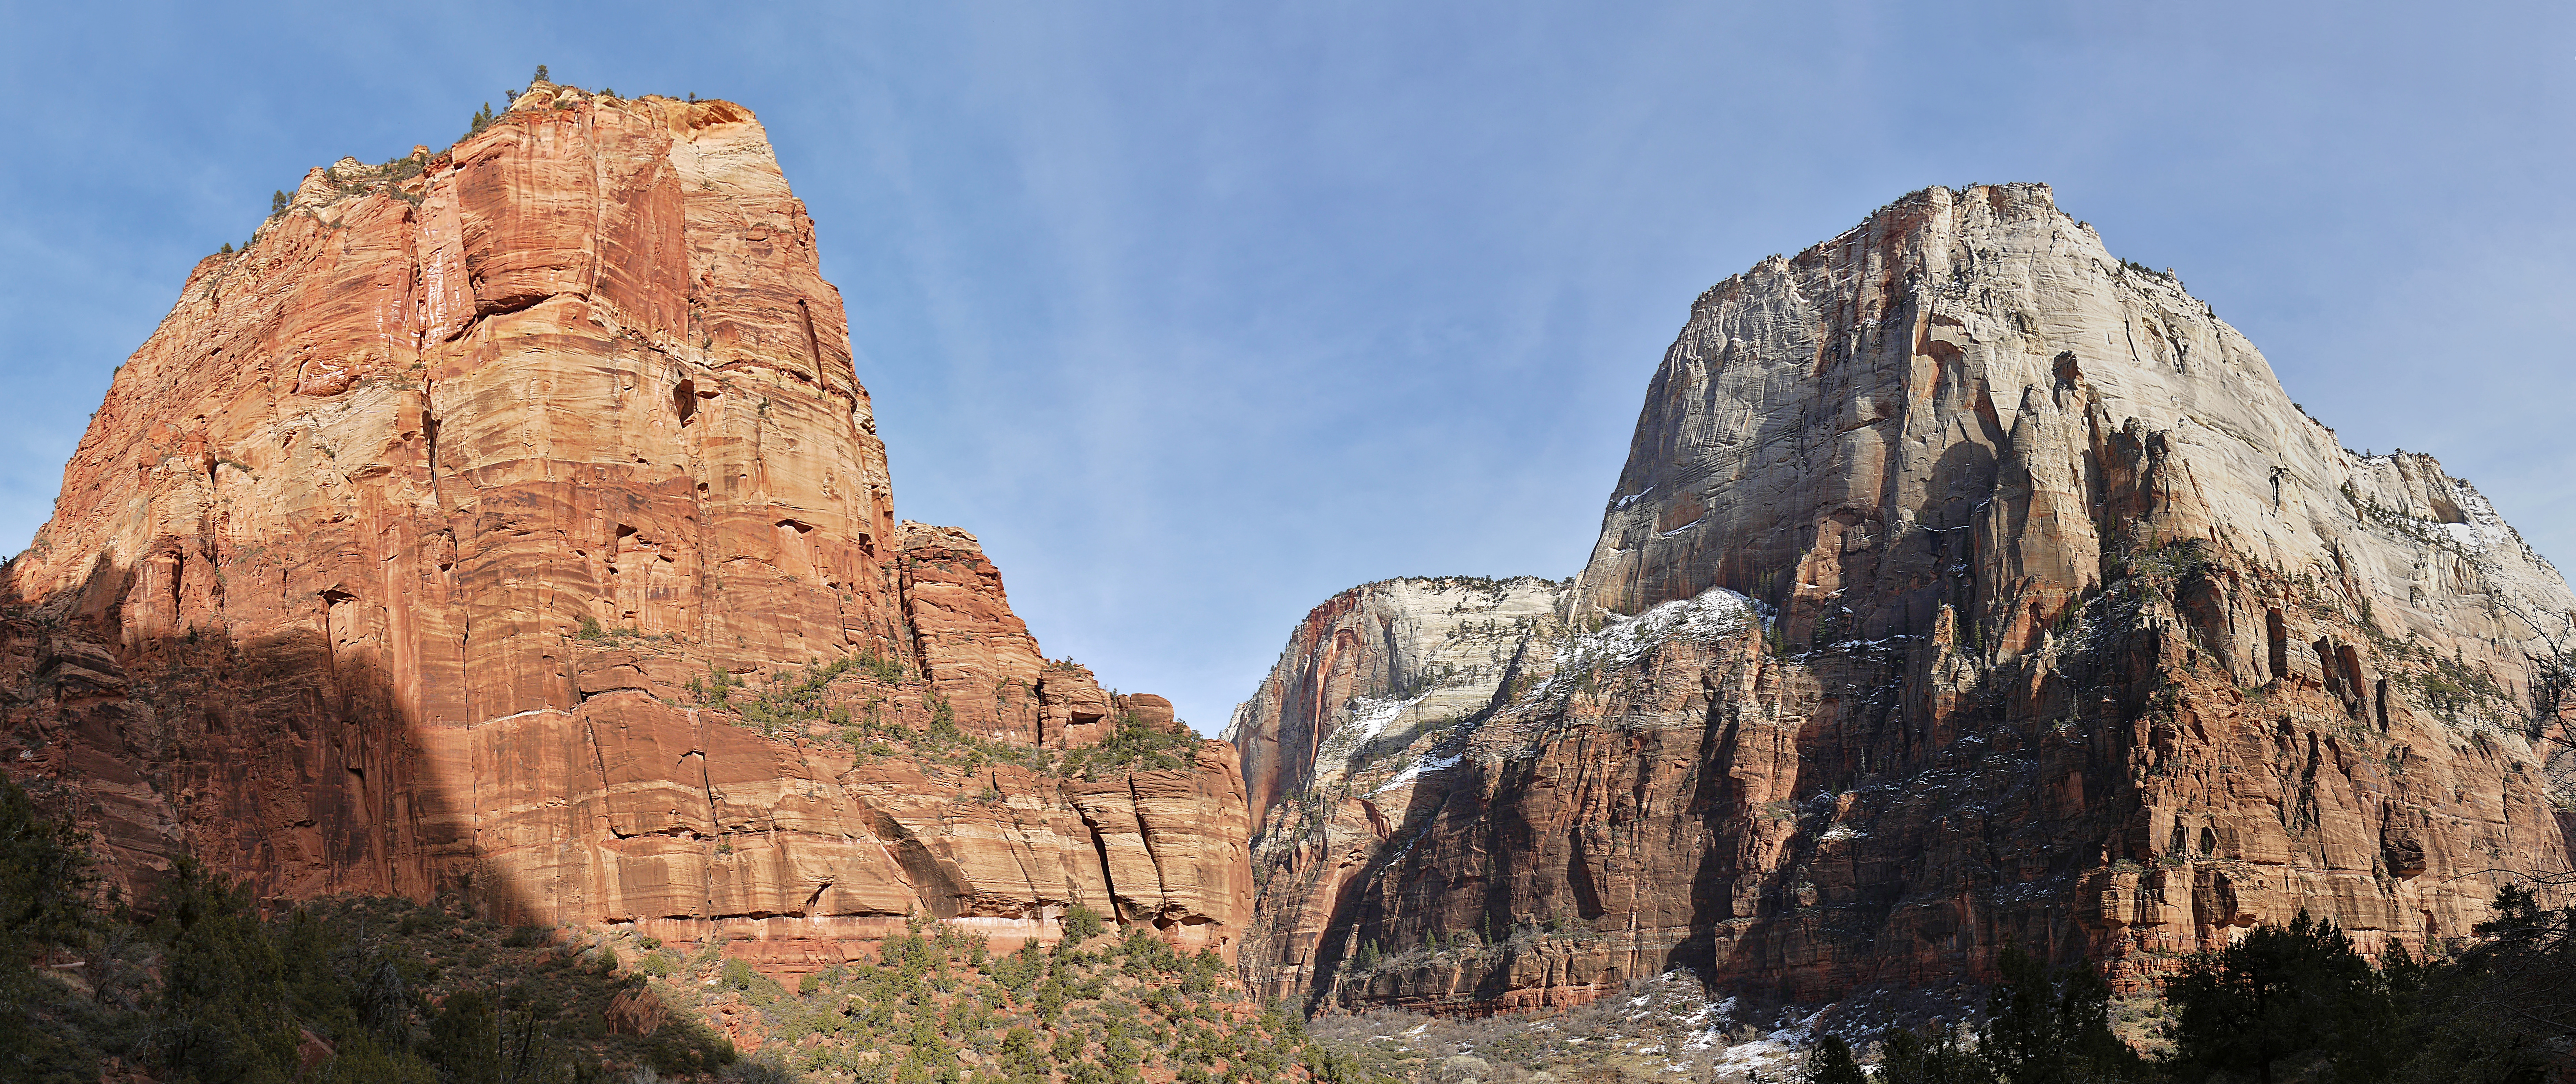 Beschreibung angels landing and the great white throne